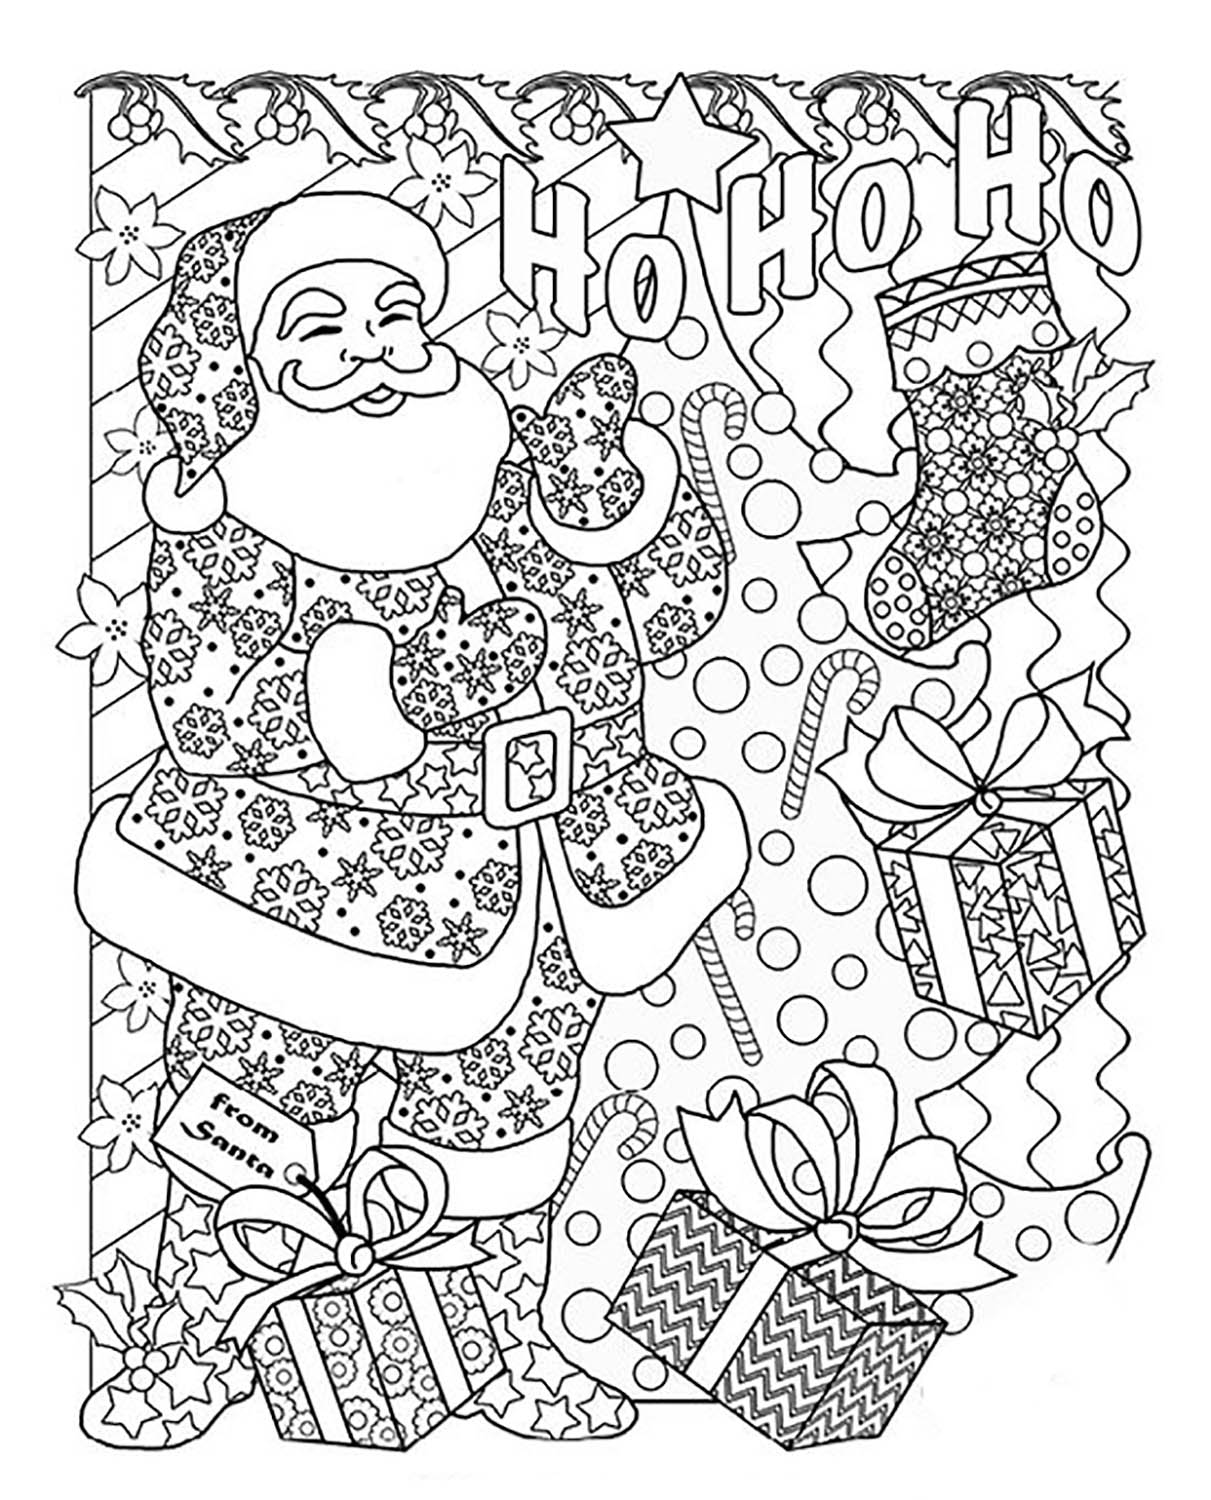 jolly christmas coloring books for adults gecko galz jolly designs by nancy nickel 7805